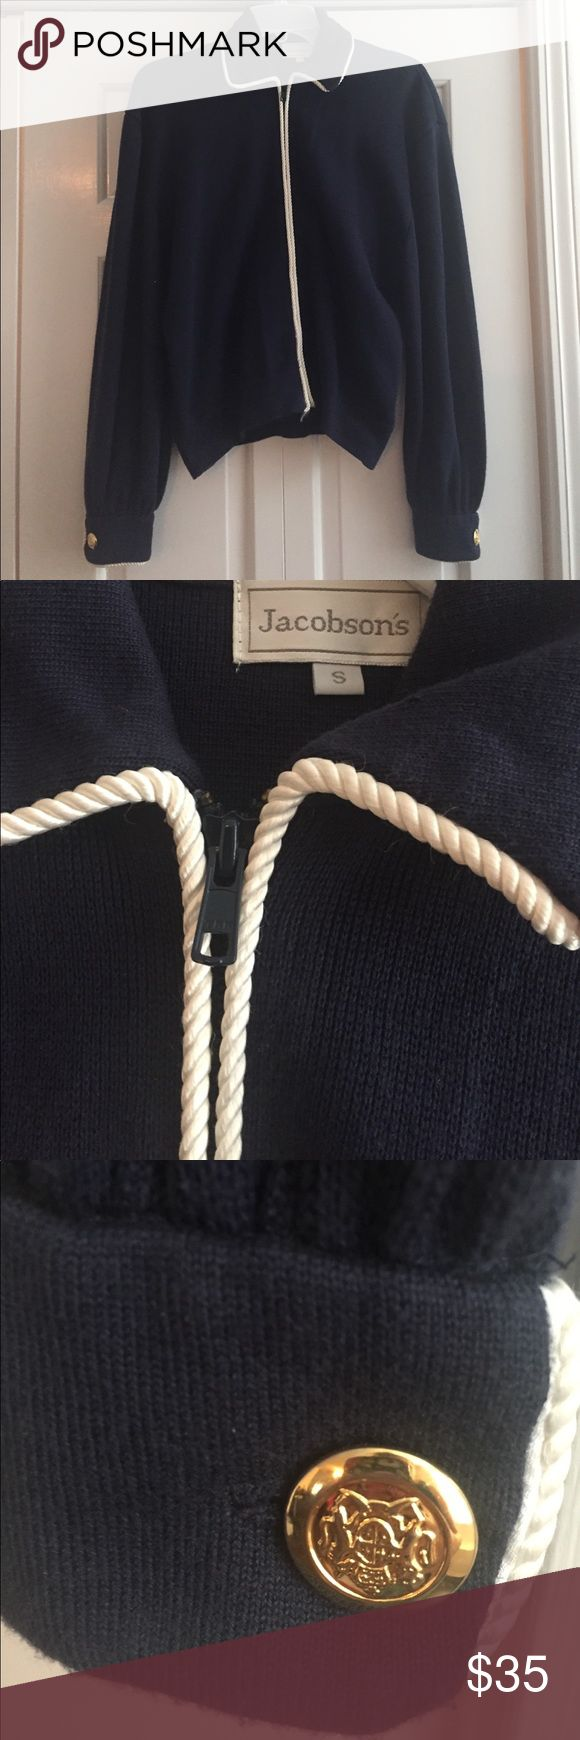 Nautical zip up sweater Navy blue lightweight sweater with white piping and gold buttons. 80's vintage from Jacobsons department store. Perfect for summer. Slight fraying on bottom of zipper but overall very good condition. Sweaters Cardigans